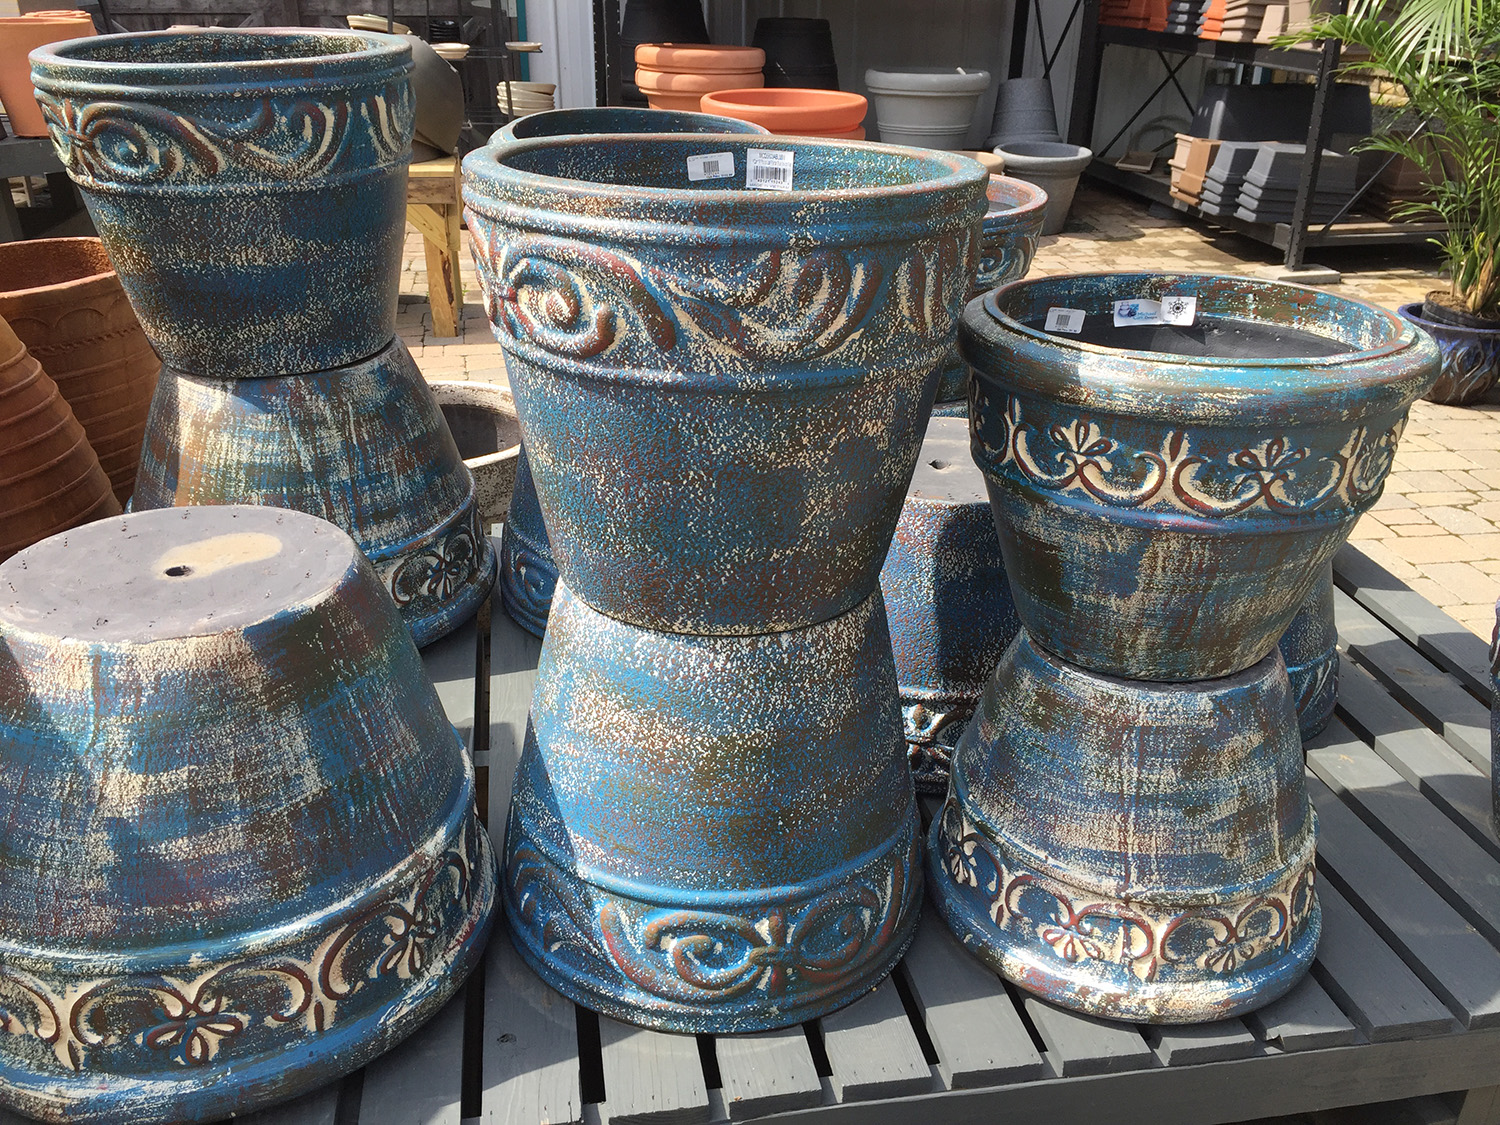 Outdoor Planters and Pottery for Sale in Bowie, MD